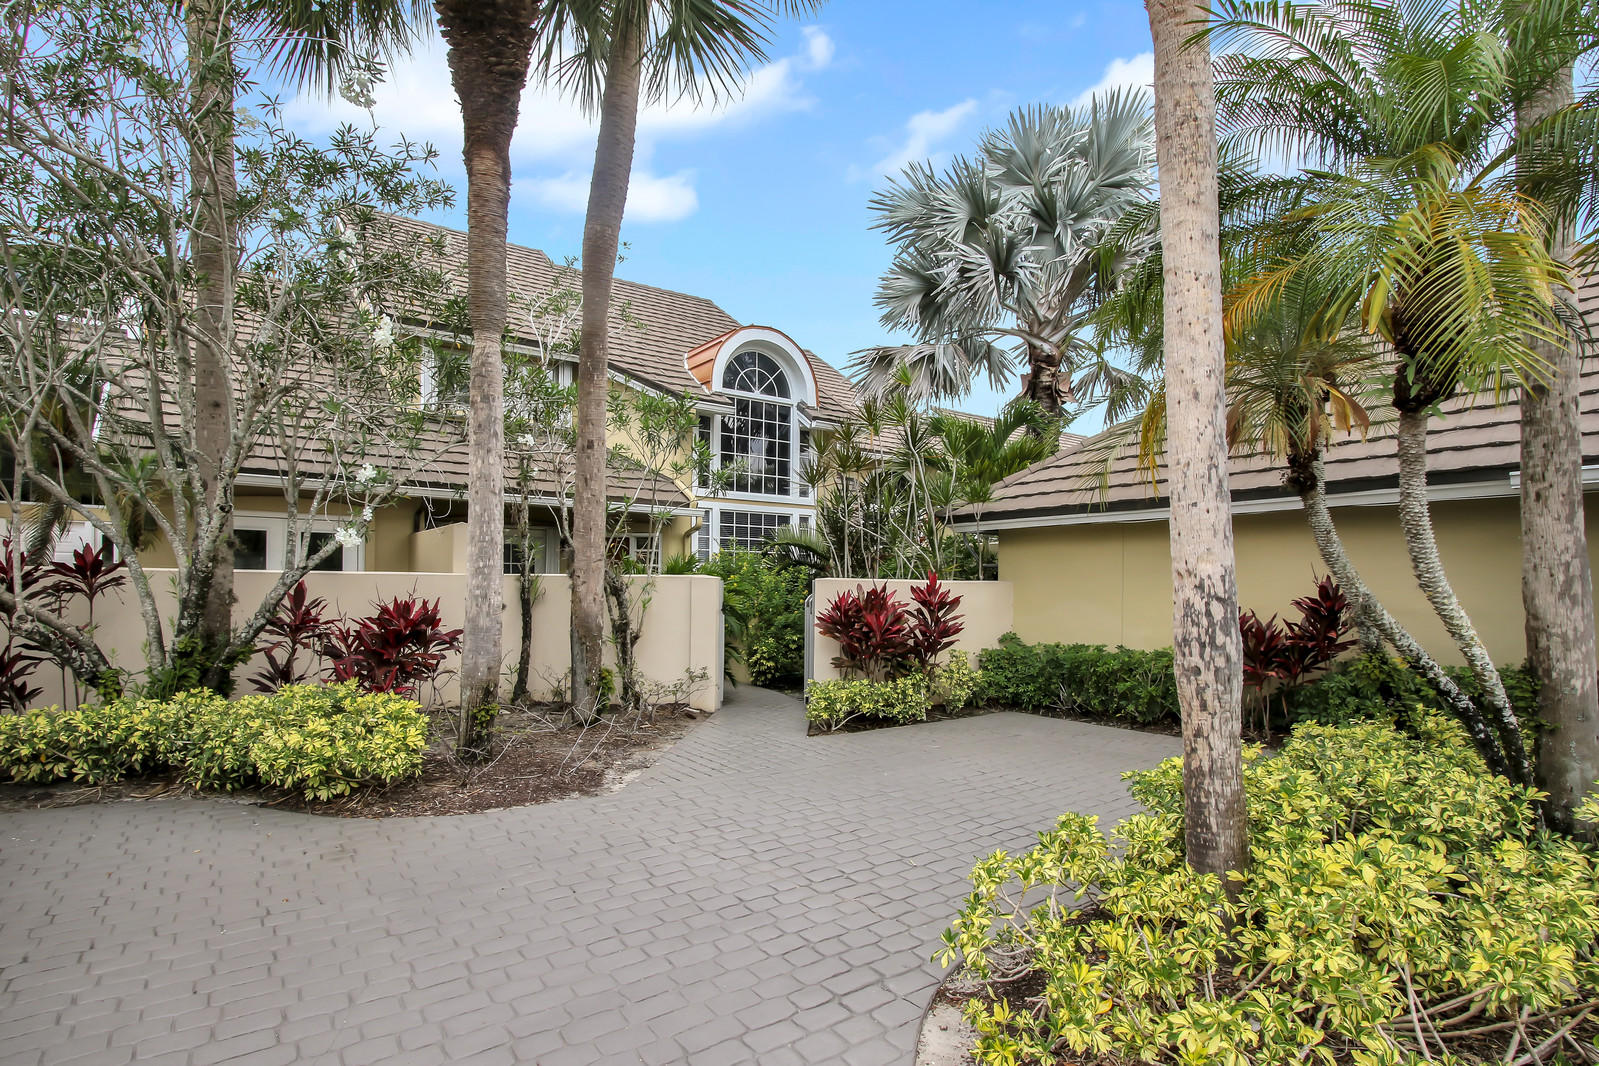 Wellington, Florida 33414, 2 Bedrooms Bedrooms, ,2 BathroomsBathrooms,Townhouse,For Rent,PALM BEACH POLO,1,RX-10519584